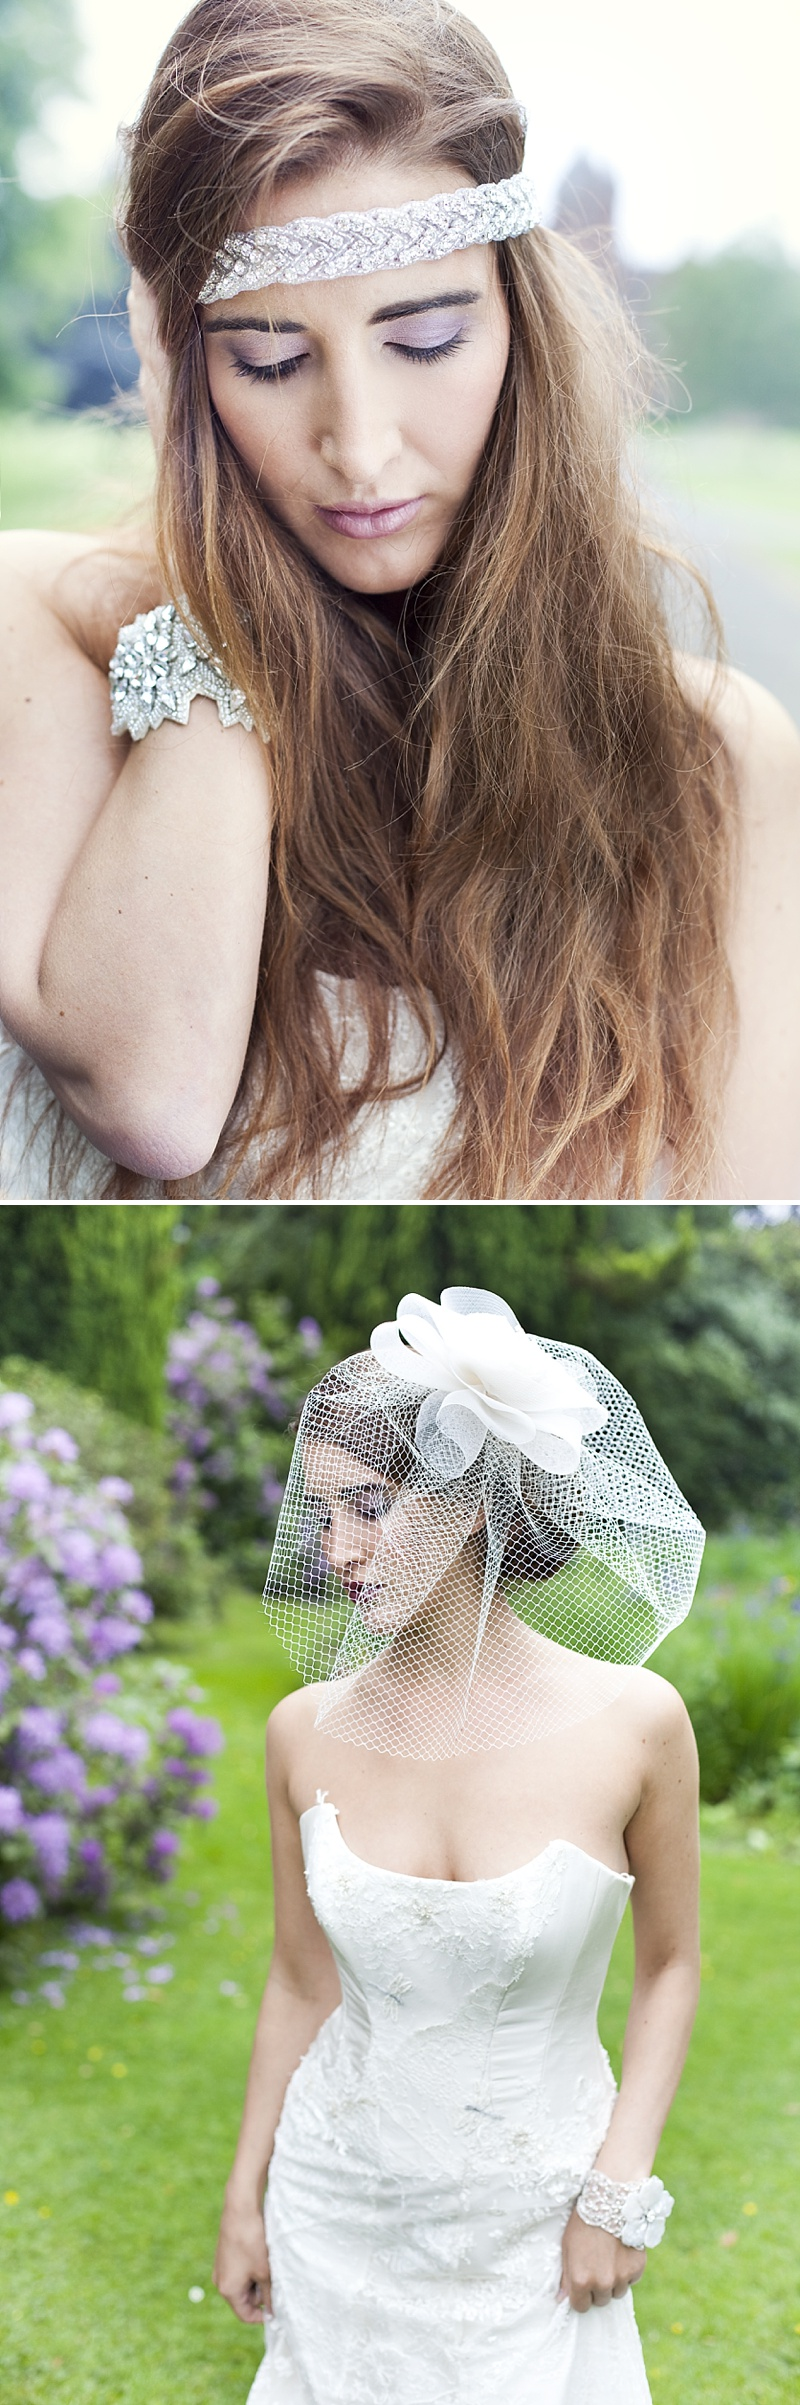 Inspiration Shoot Featuring Donna Crain Headpieces With A Bridal Make Up Product Recommendations From Adele Rosie Make Up Artist Images By Cecelina Photography 0011 Heavenly Headpieces.